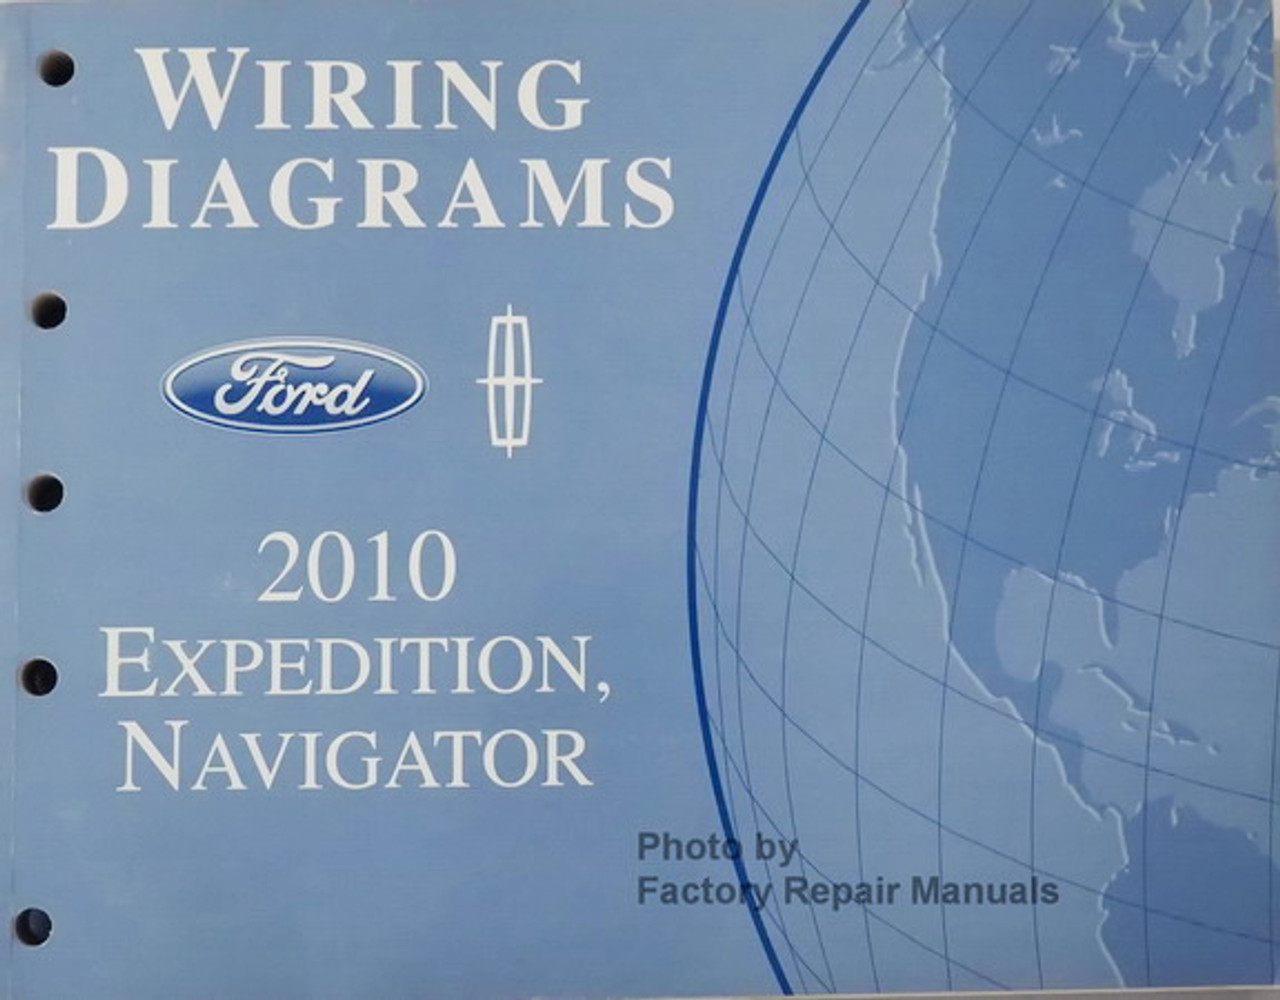 2010 Ford Expedition And Lincoln Navigator Electrical Wiring Diagrams Manual Factory Repair Manuals